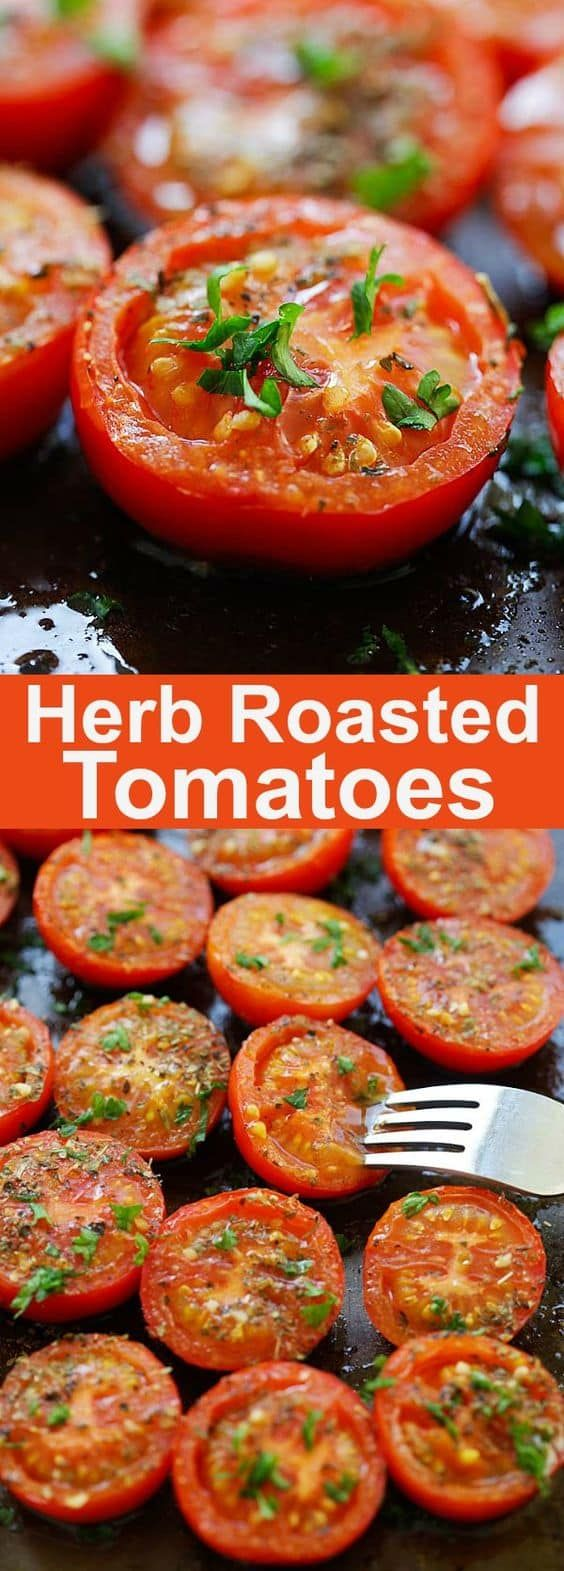 Herb Roasted Tomatoes Recipe